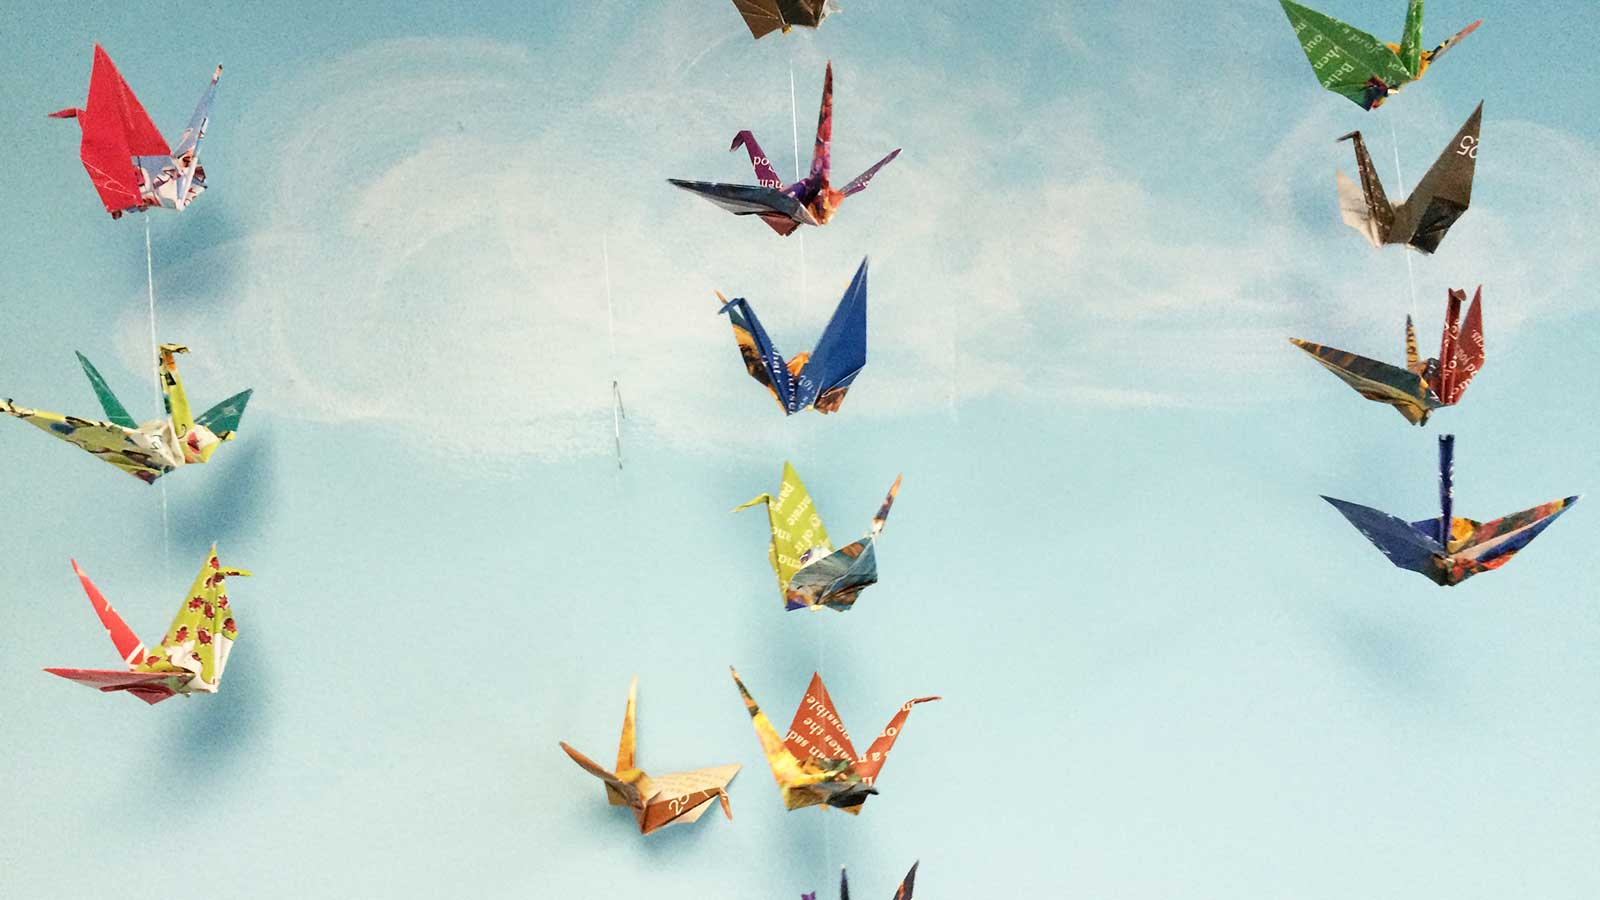 dr-chen-see-origami-birds-01